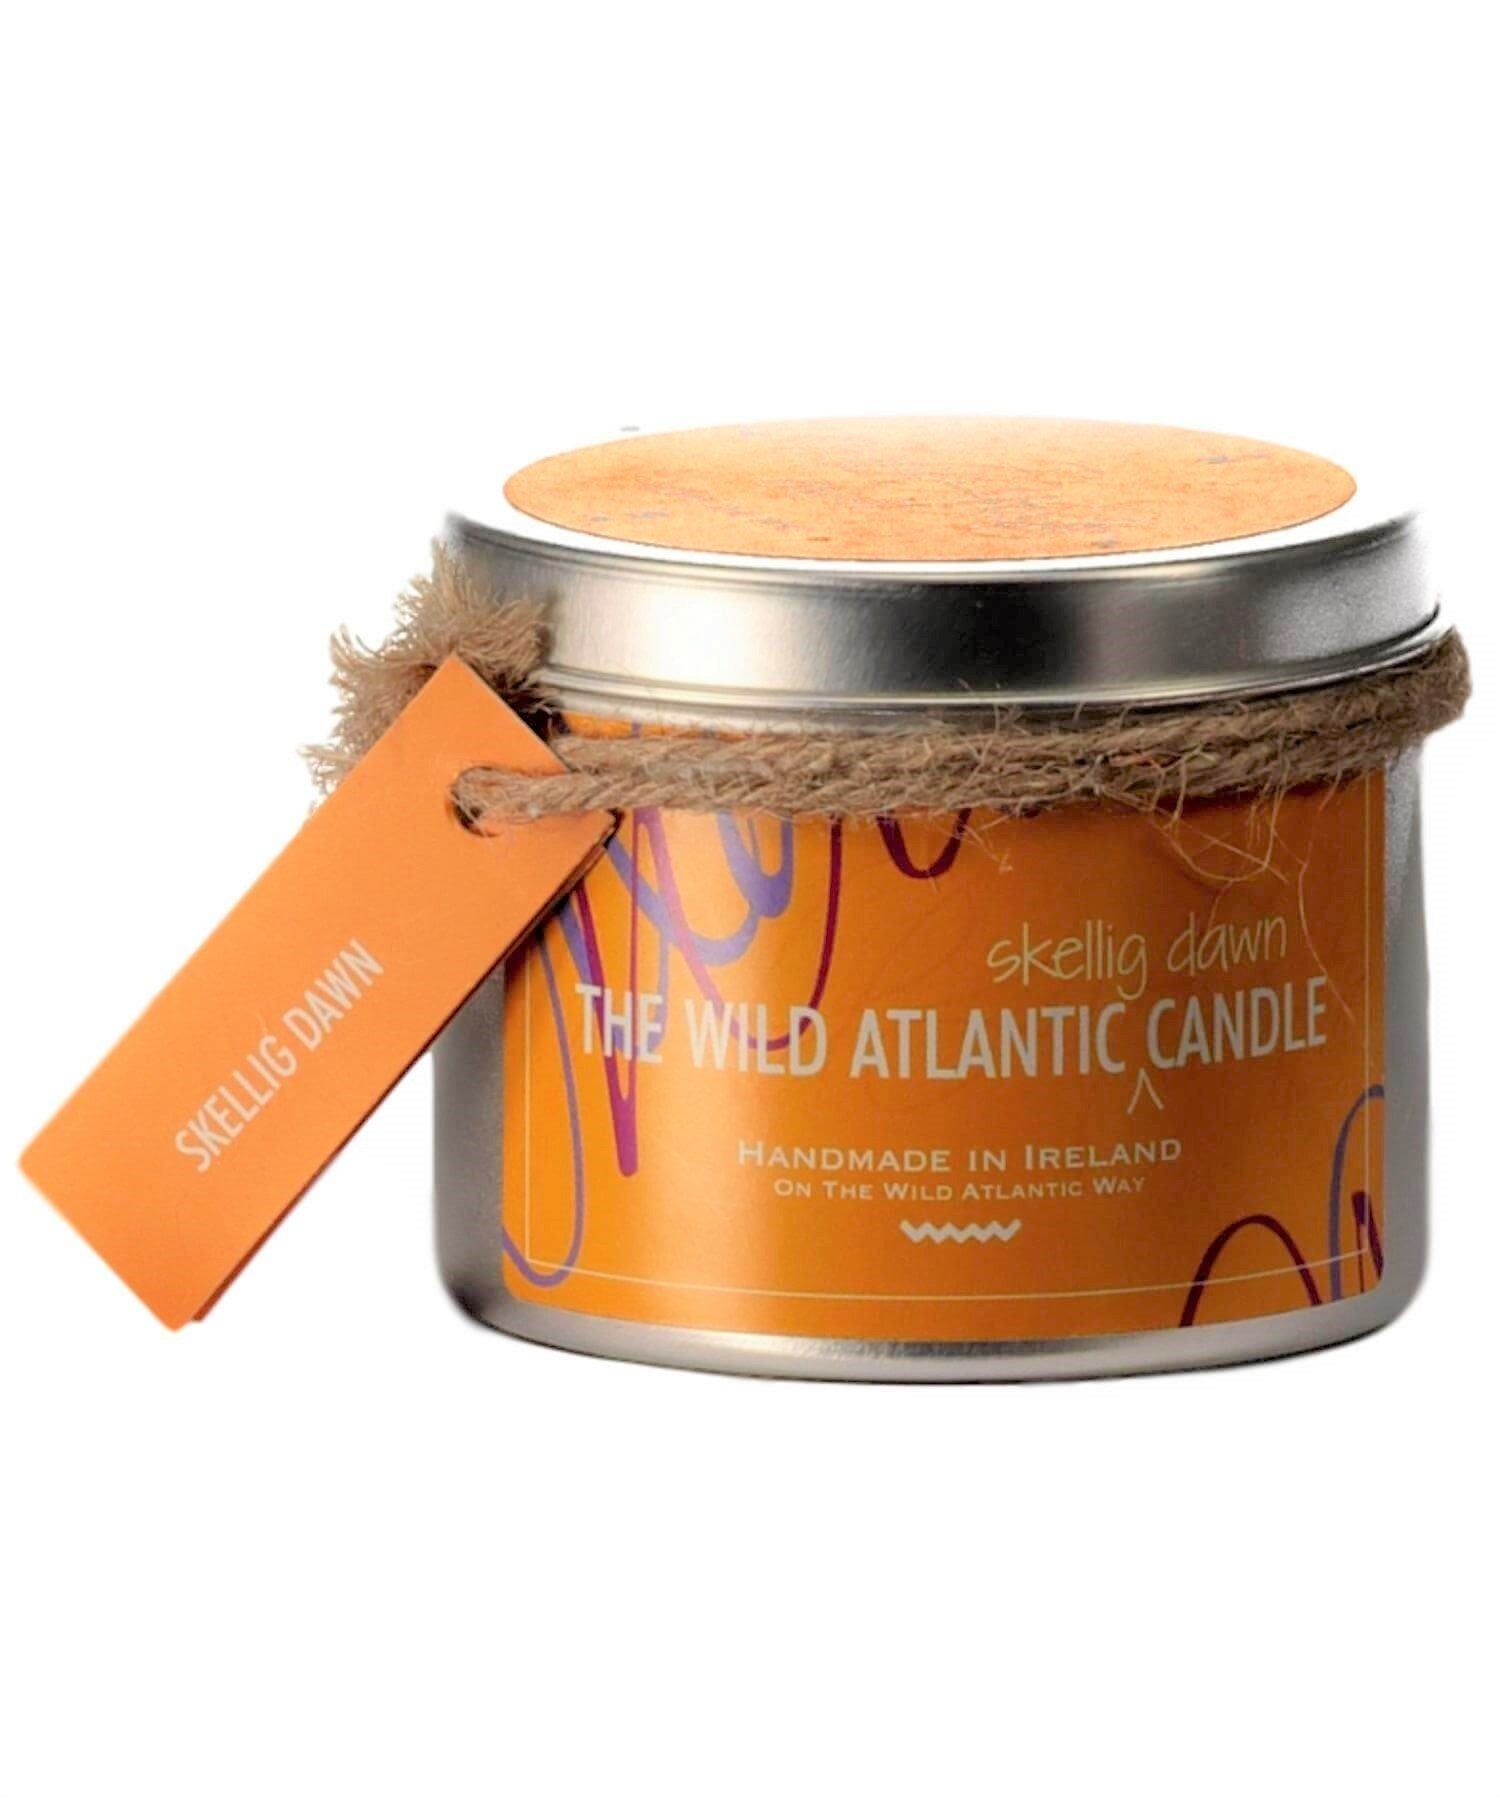 Skellig Dawn - [Wild Atlantic Candles] - Home Fragrance - Irish Gifts